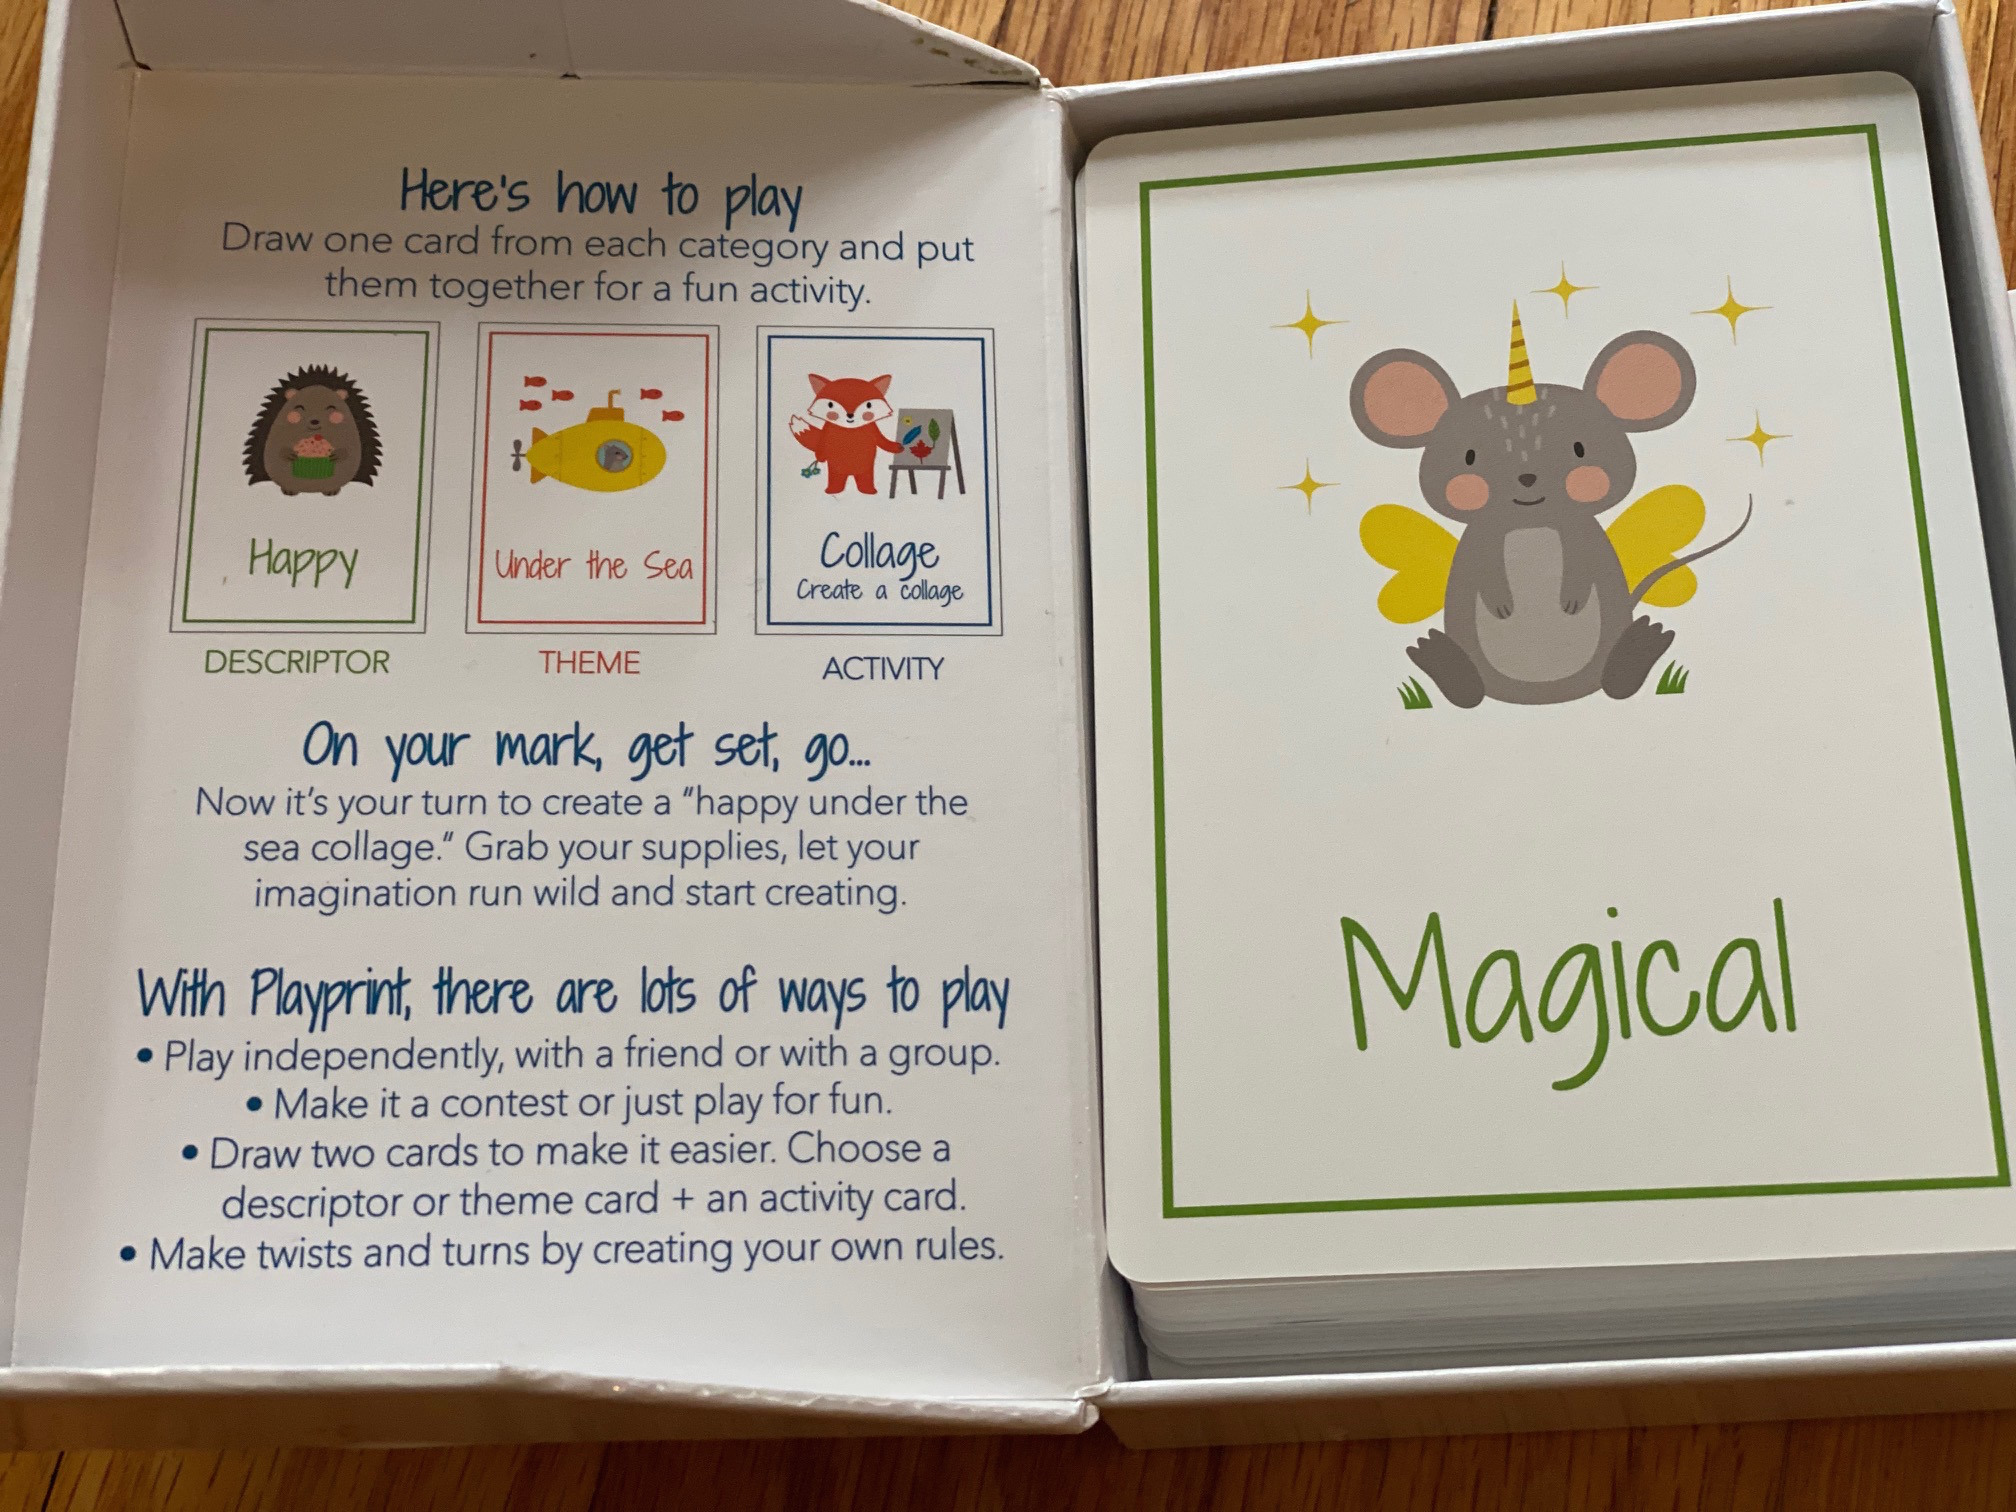 Get to Know More about the Playprint aka Tech-Free Toy We All Need Right Now